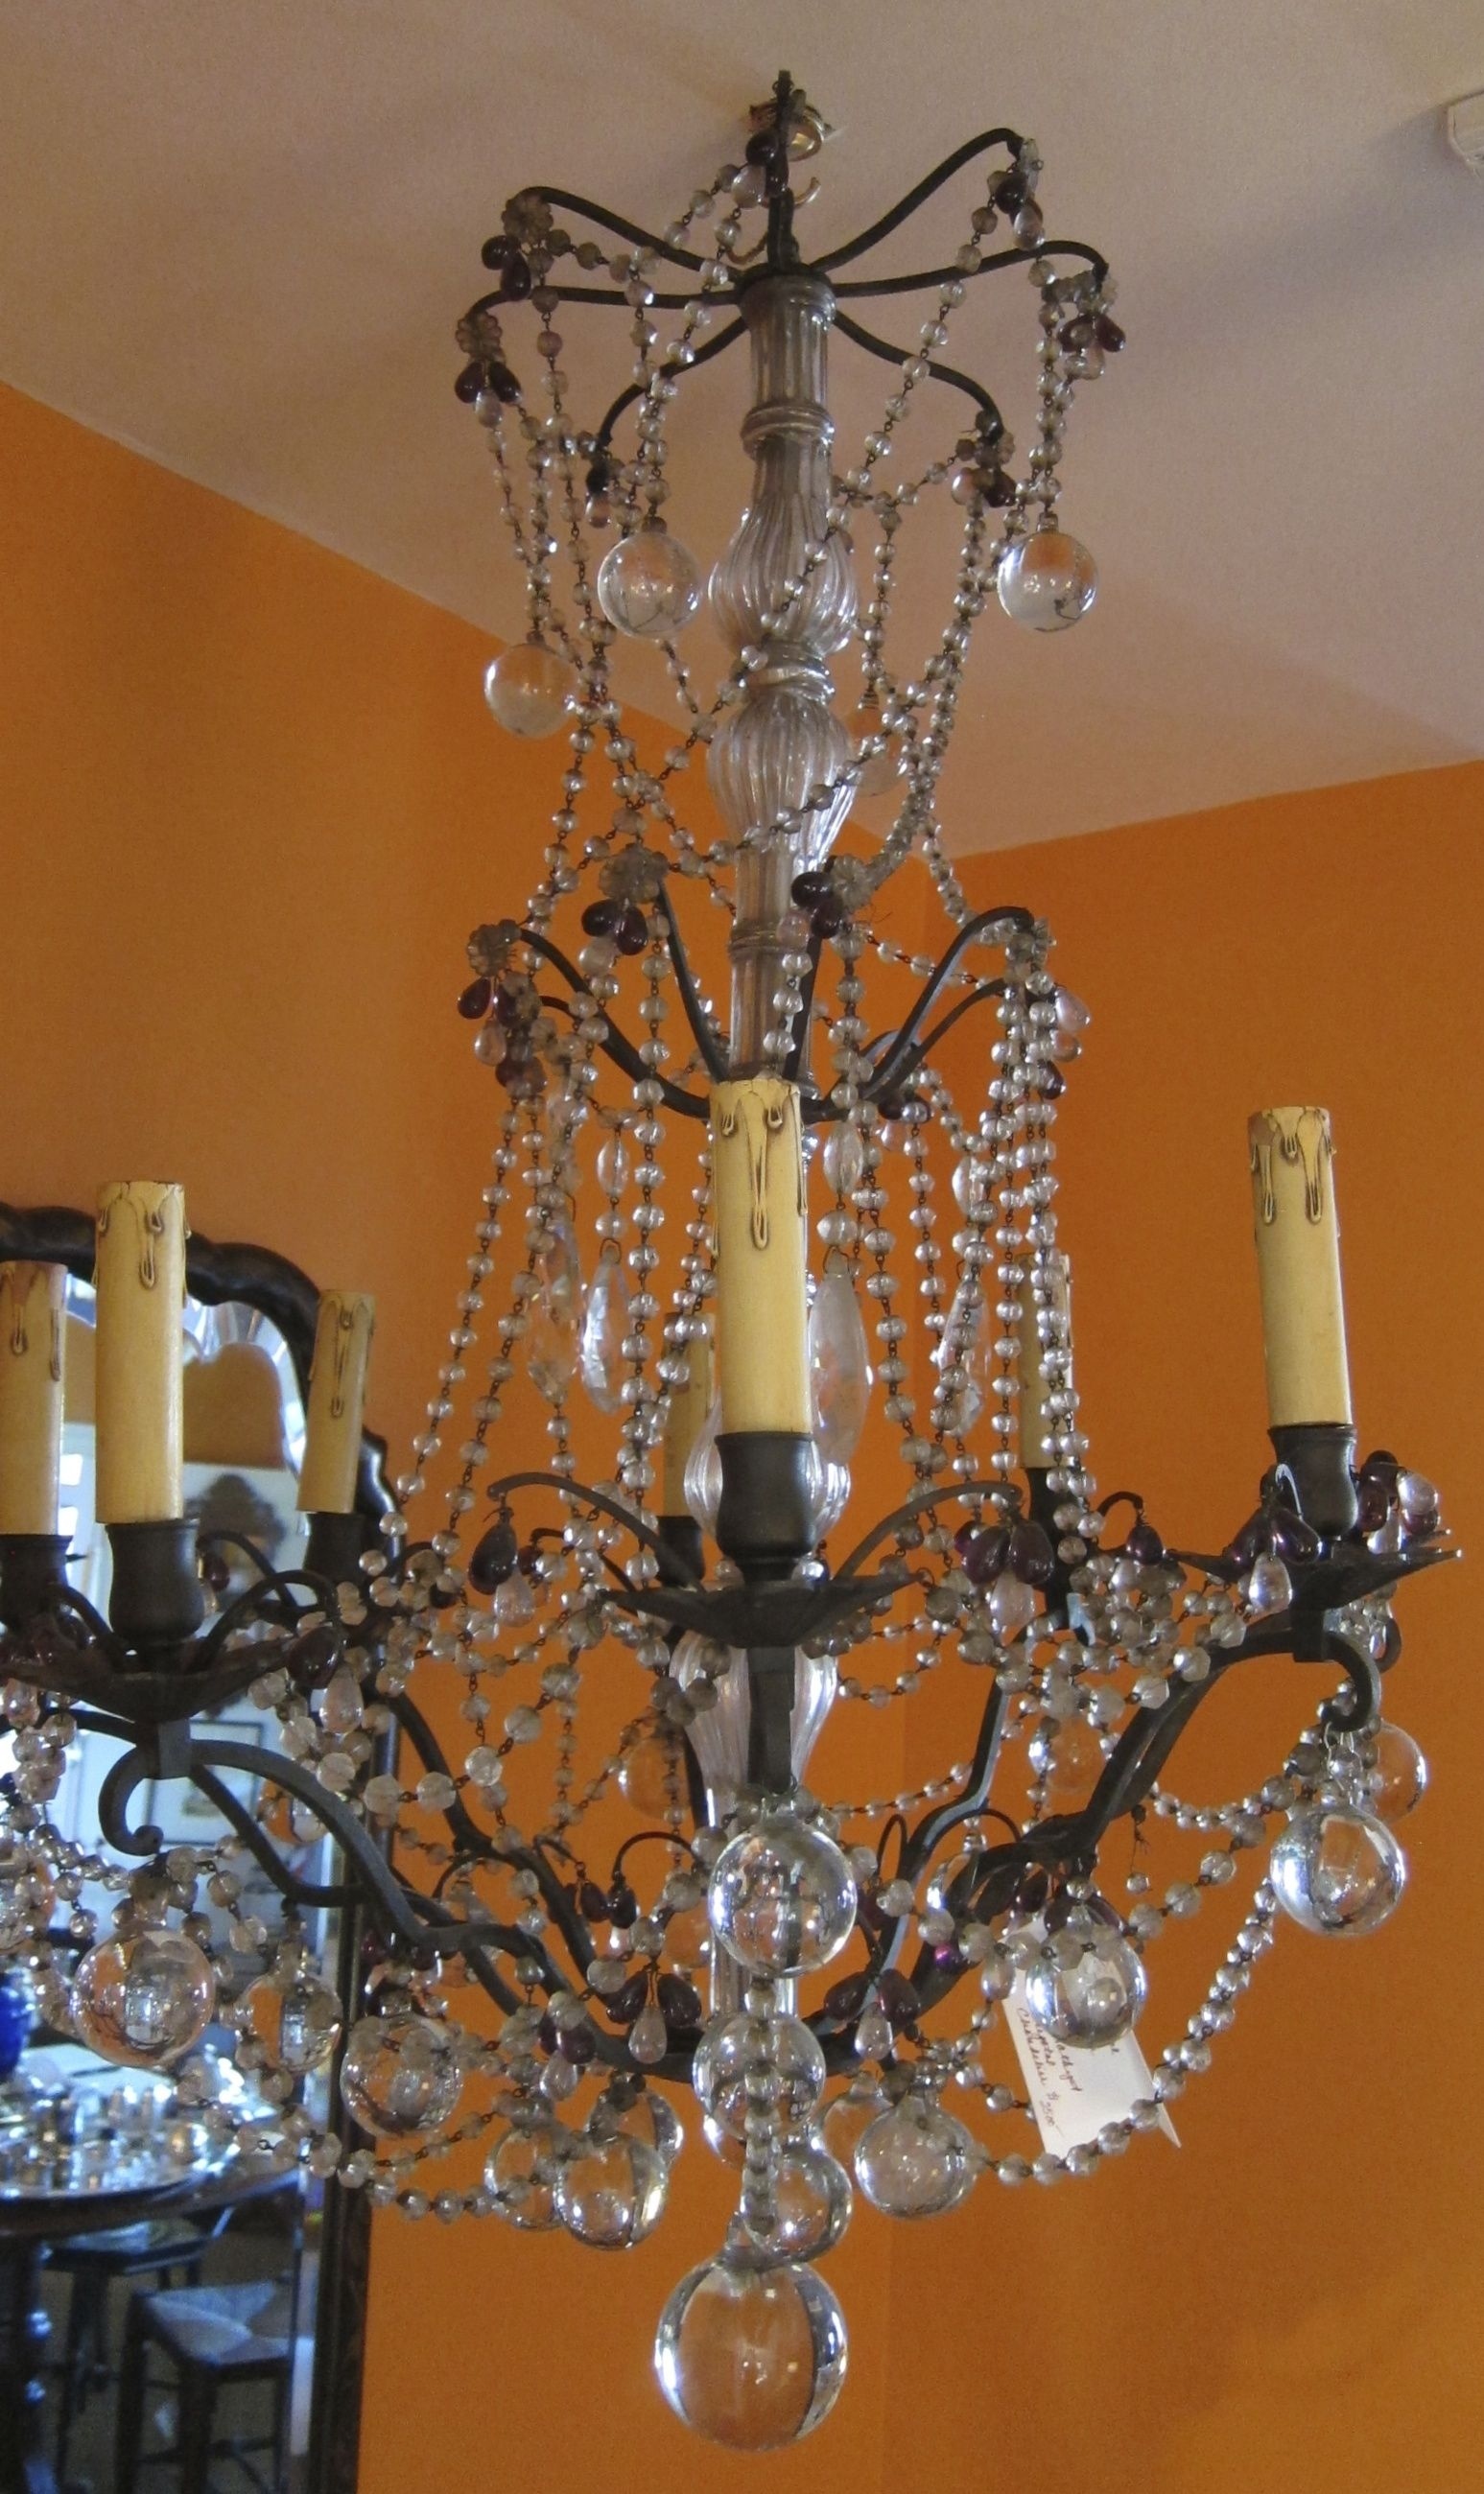 chandelier renovation chandeliers japanese art fashionable a sydney cottage pin in for vintage deco sale